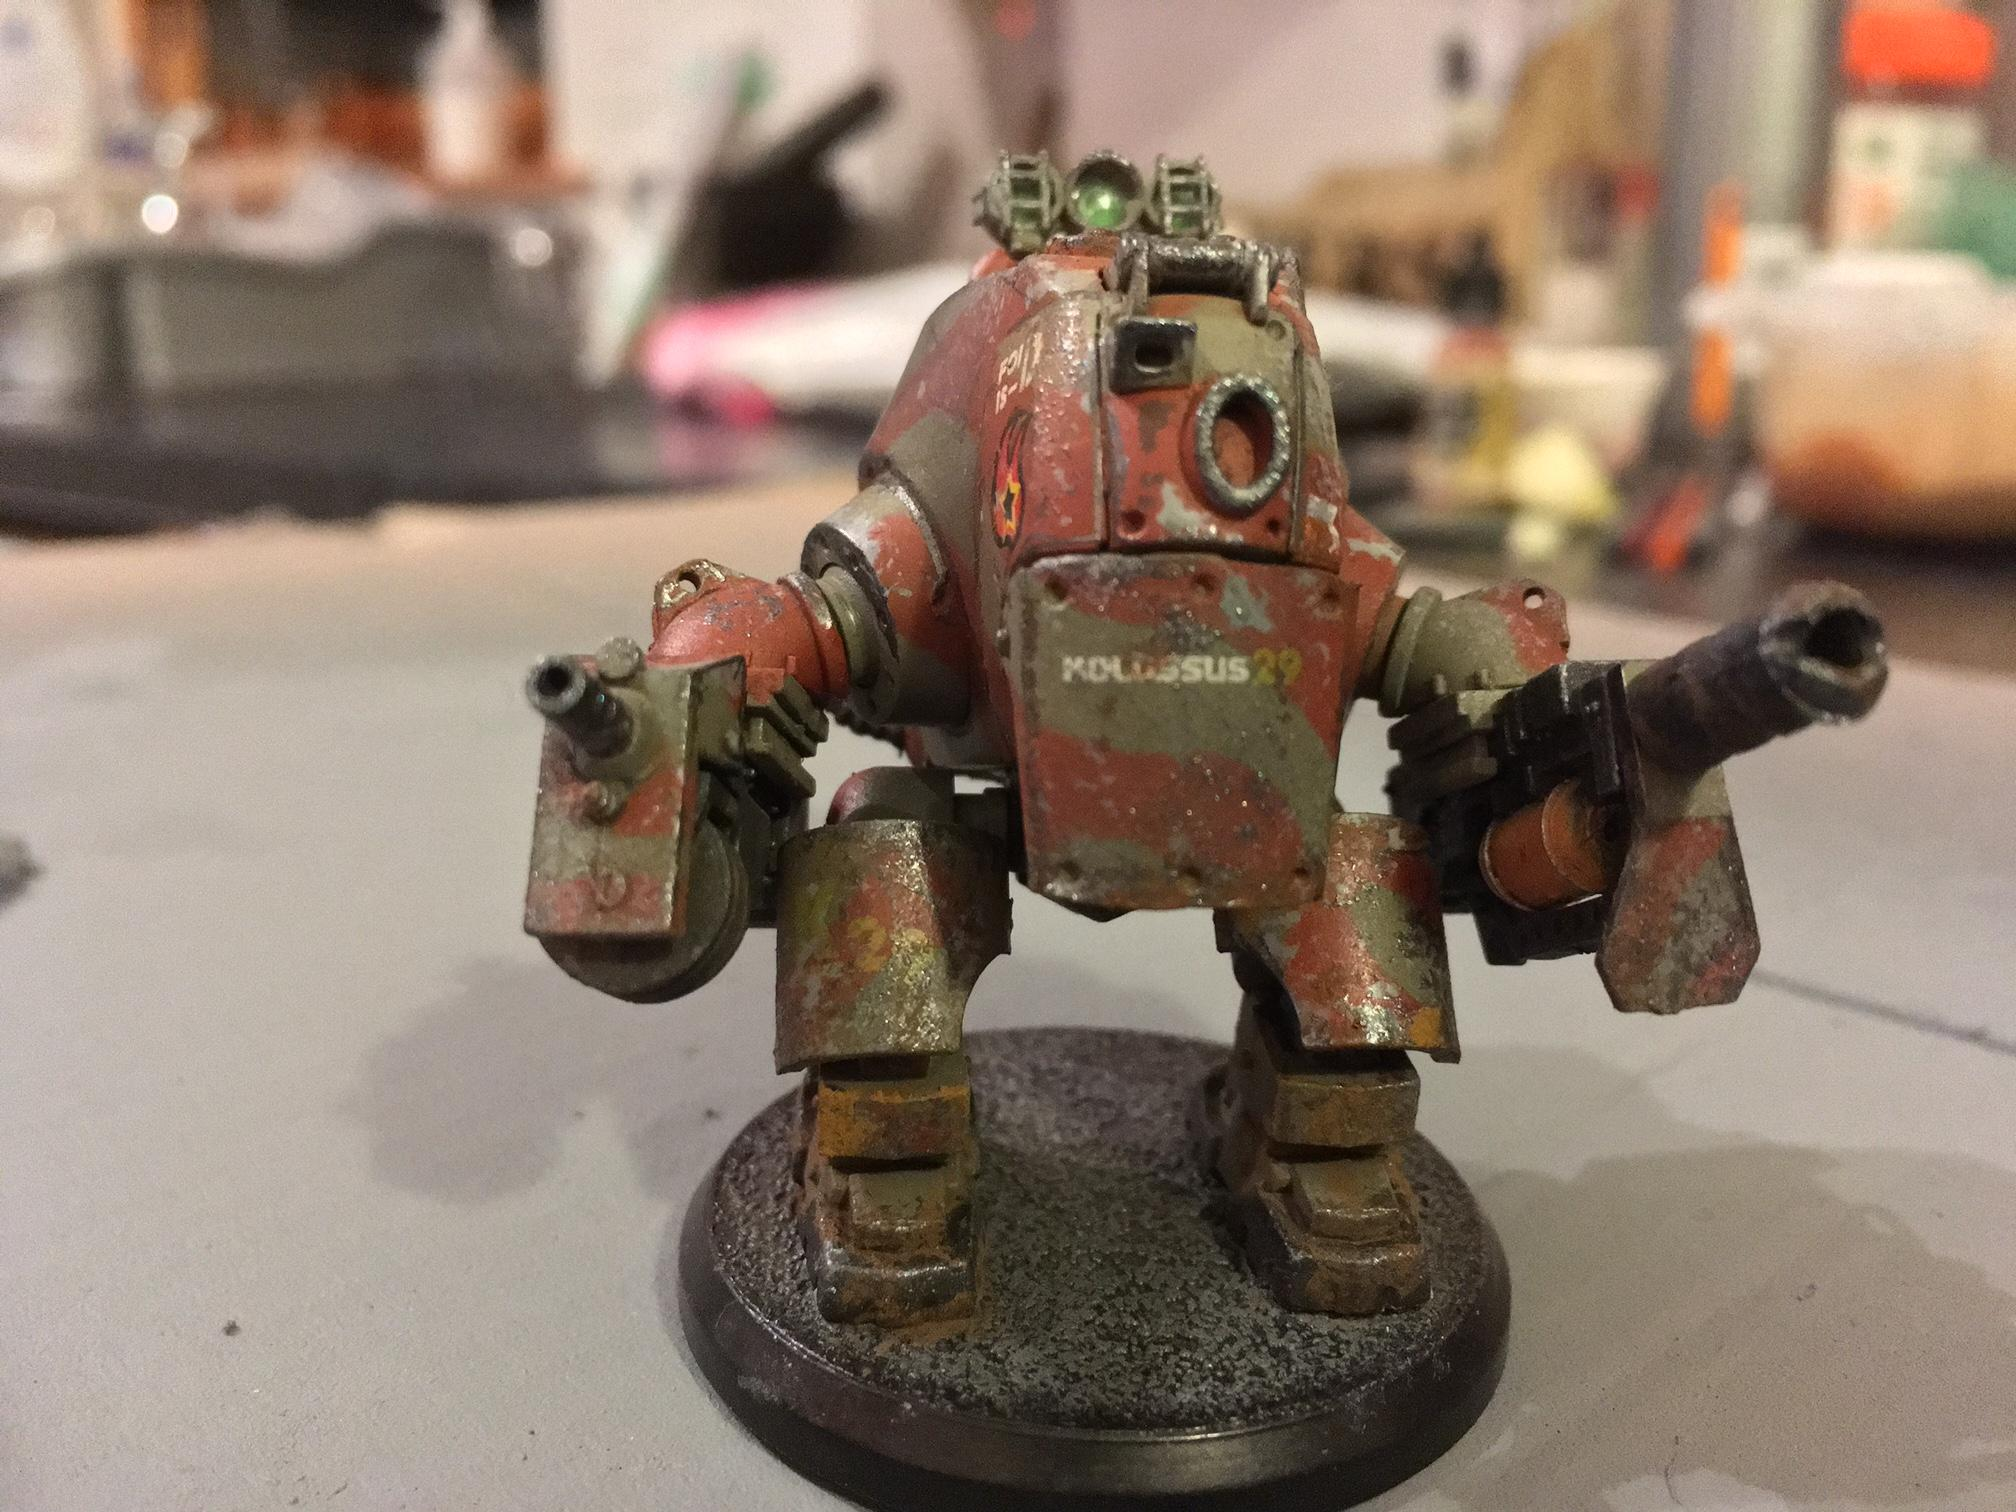 Armor, Armoured, AT-43, Battle, Camoflague, Camouflage, Chipped, Crusty, Damage, Dust, Heavy, Metal, Metalic, Mud, Repair, Rivets, Rough, Rust, Rusted, Walker, War, Weathered